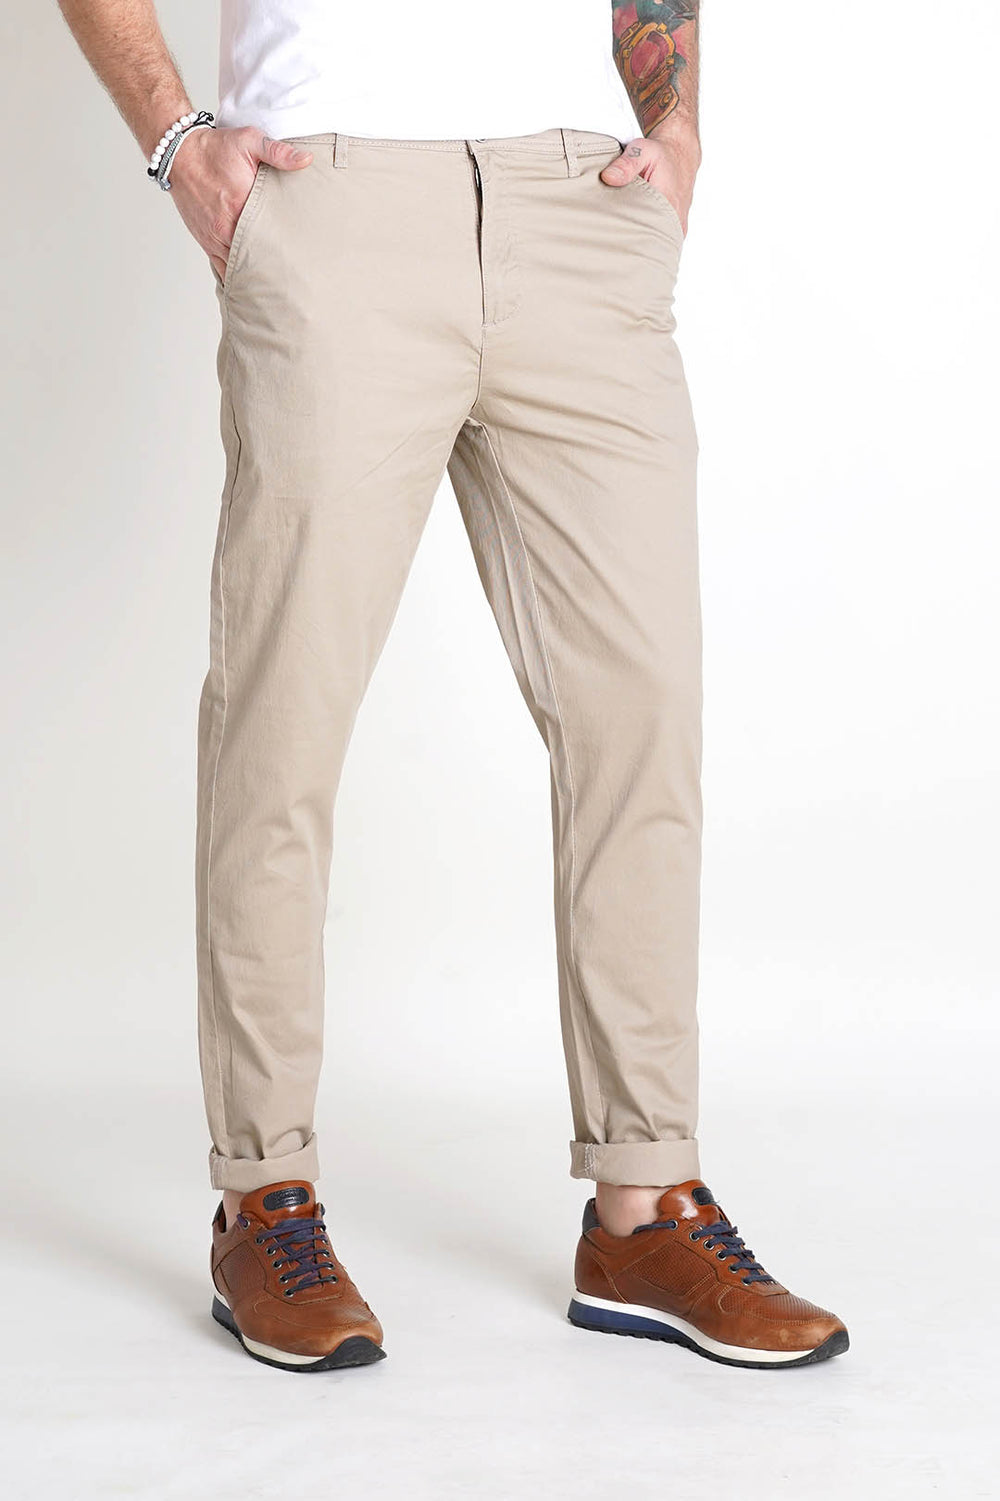 FRANK TAILOR CHINOS TROUSER WITH SCETCH